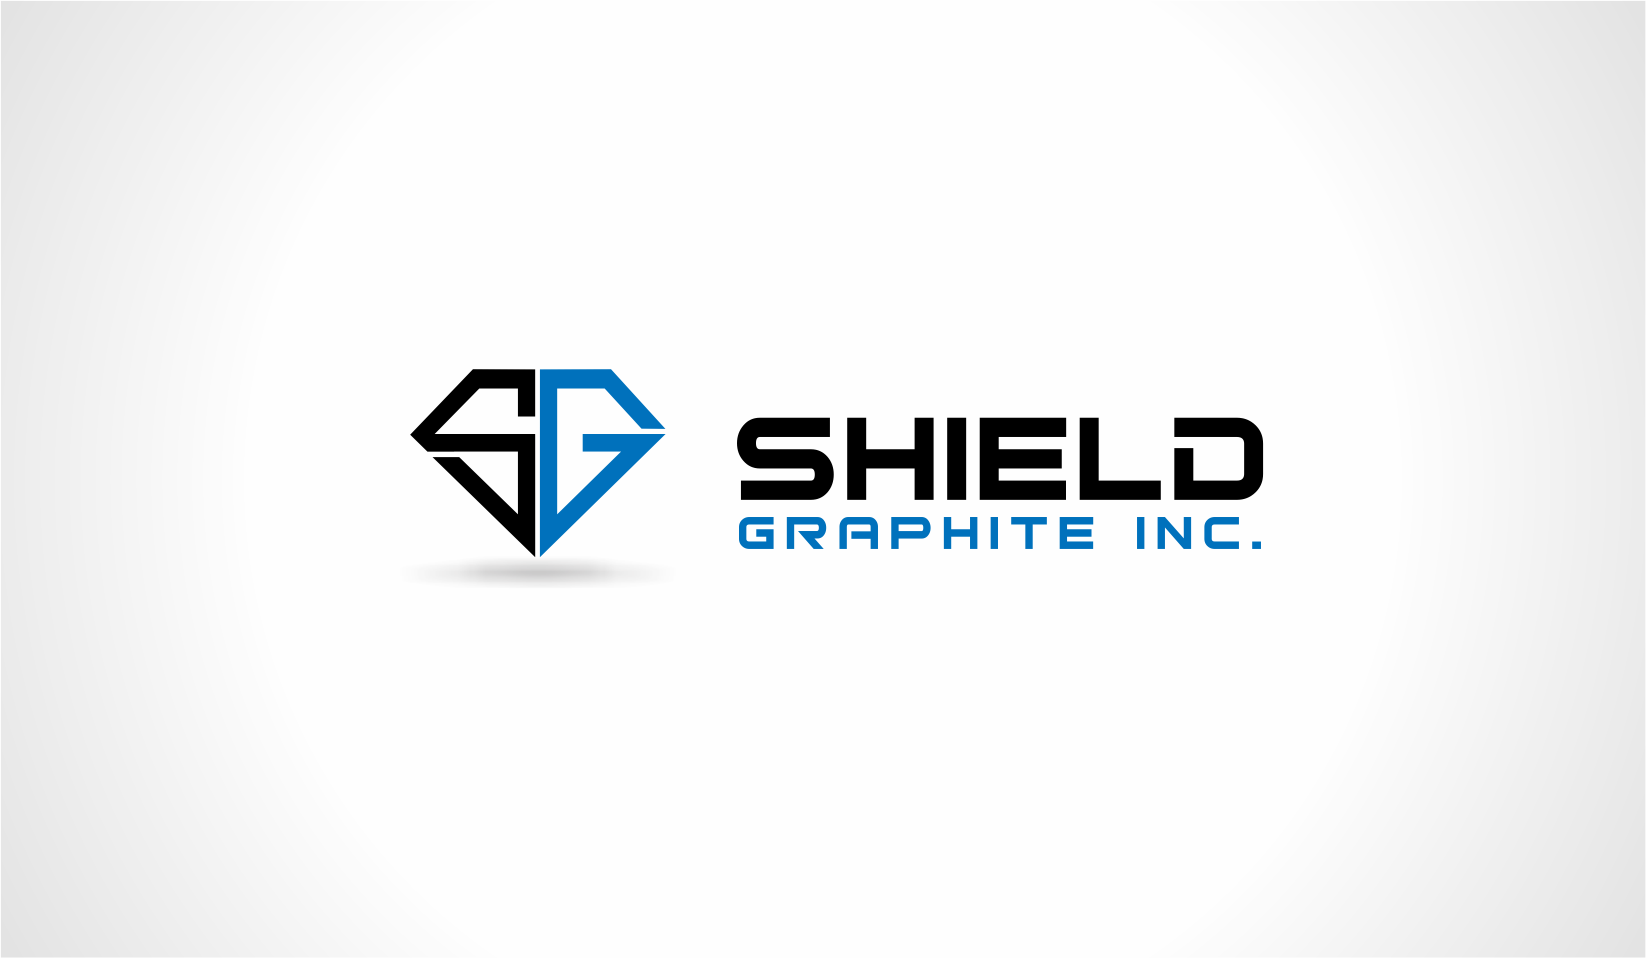 Logo Design by Muhammad Aslam - Entry No. 111 in the Logo Design Contest Imaginative Logo Design for Shield Graphite Inc..